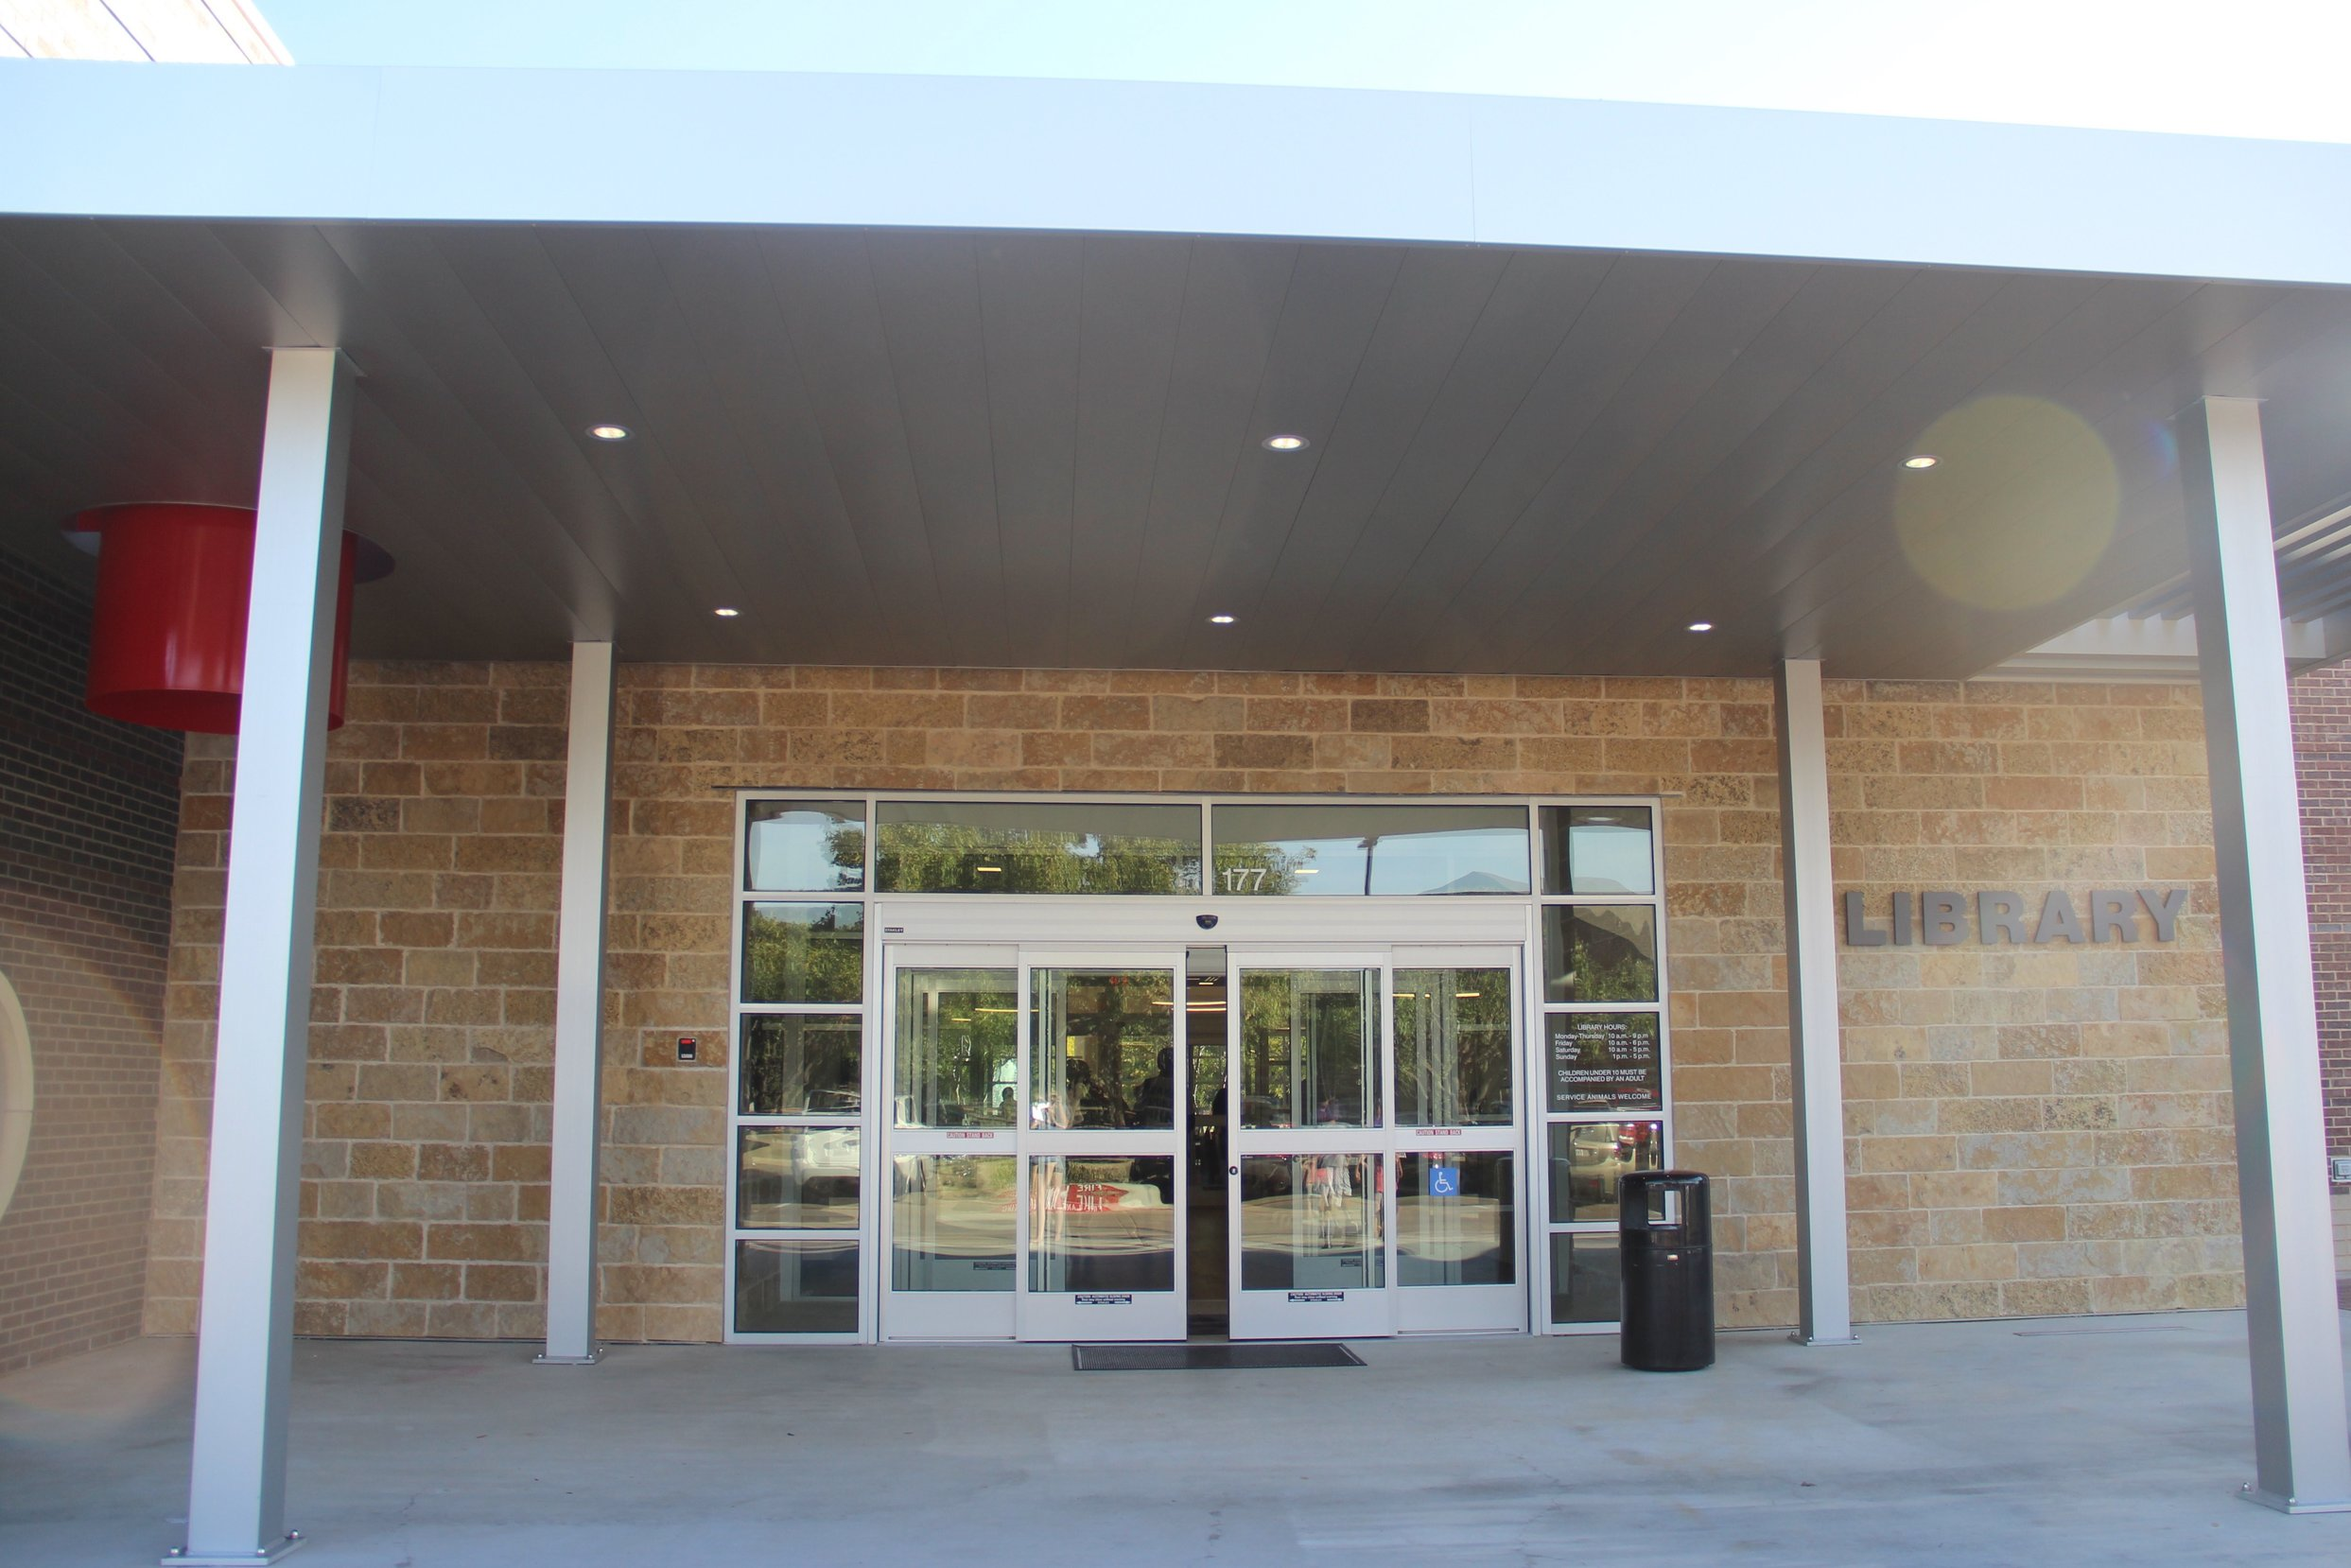 The William T. Cozby public library is located at 177 N Heartz Rd and has been recently renovated. After being closed for many months, the library is now open to the public and will have its opening ceremony on Nov. 20.